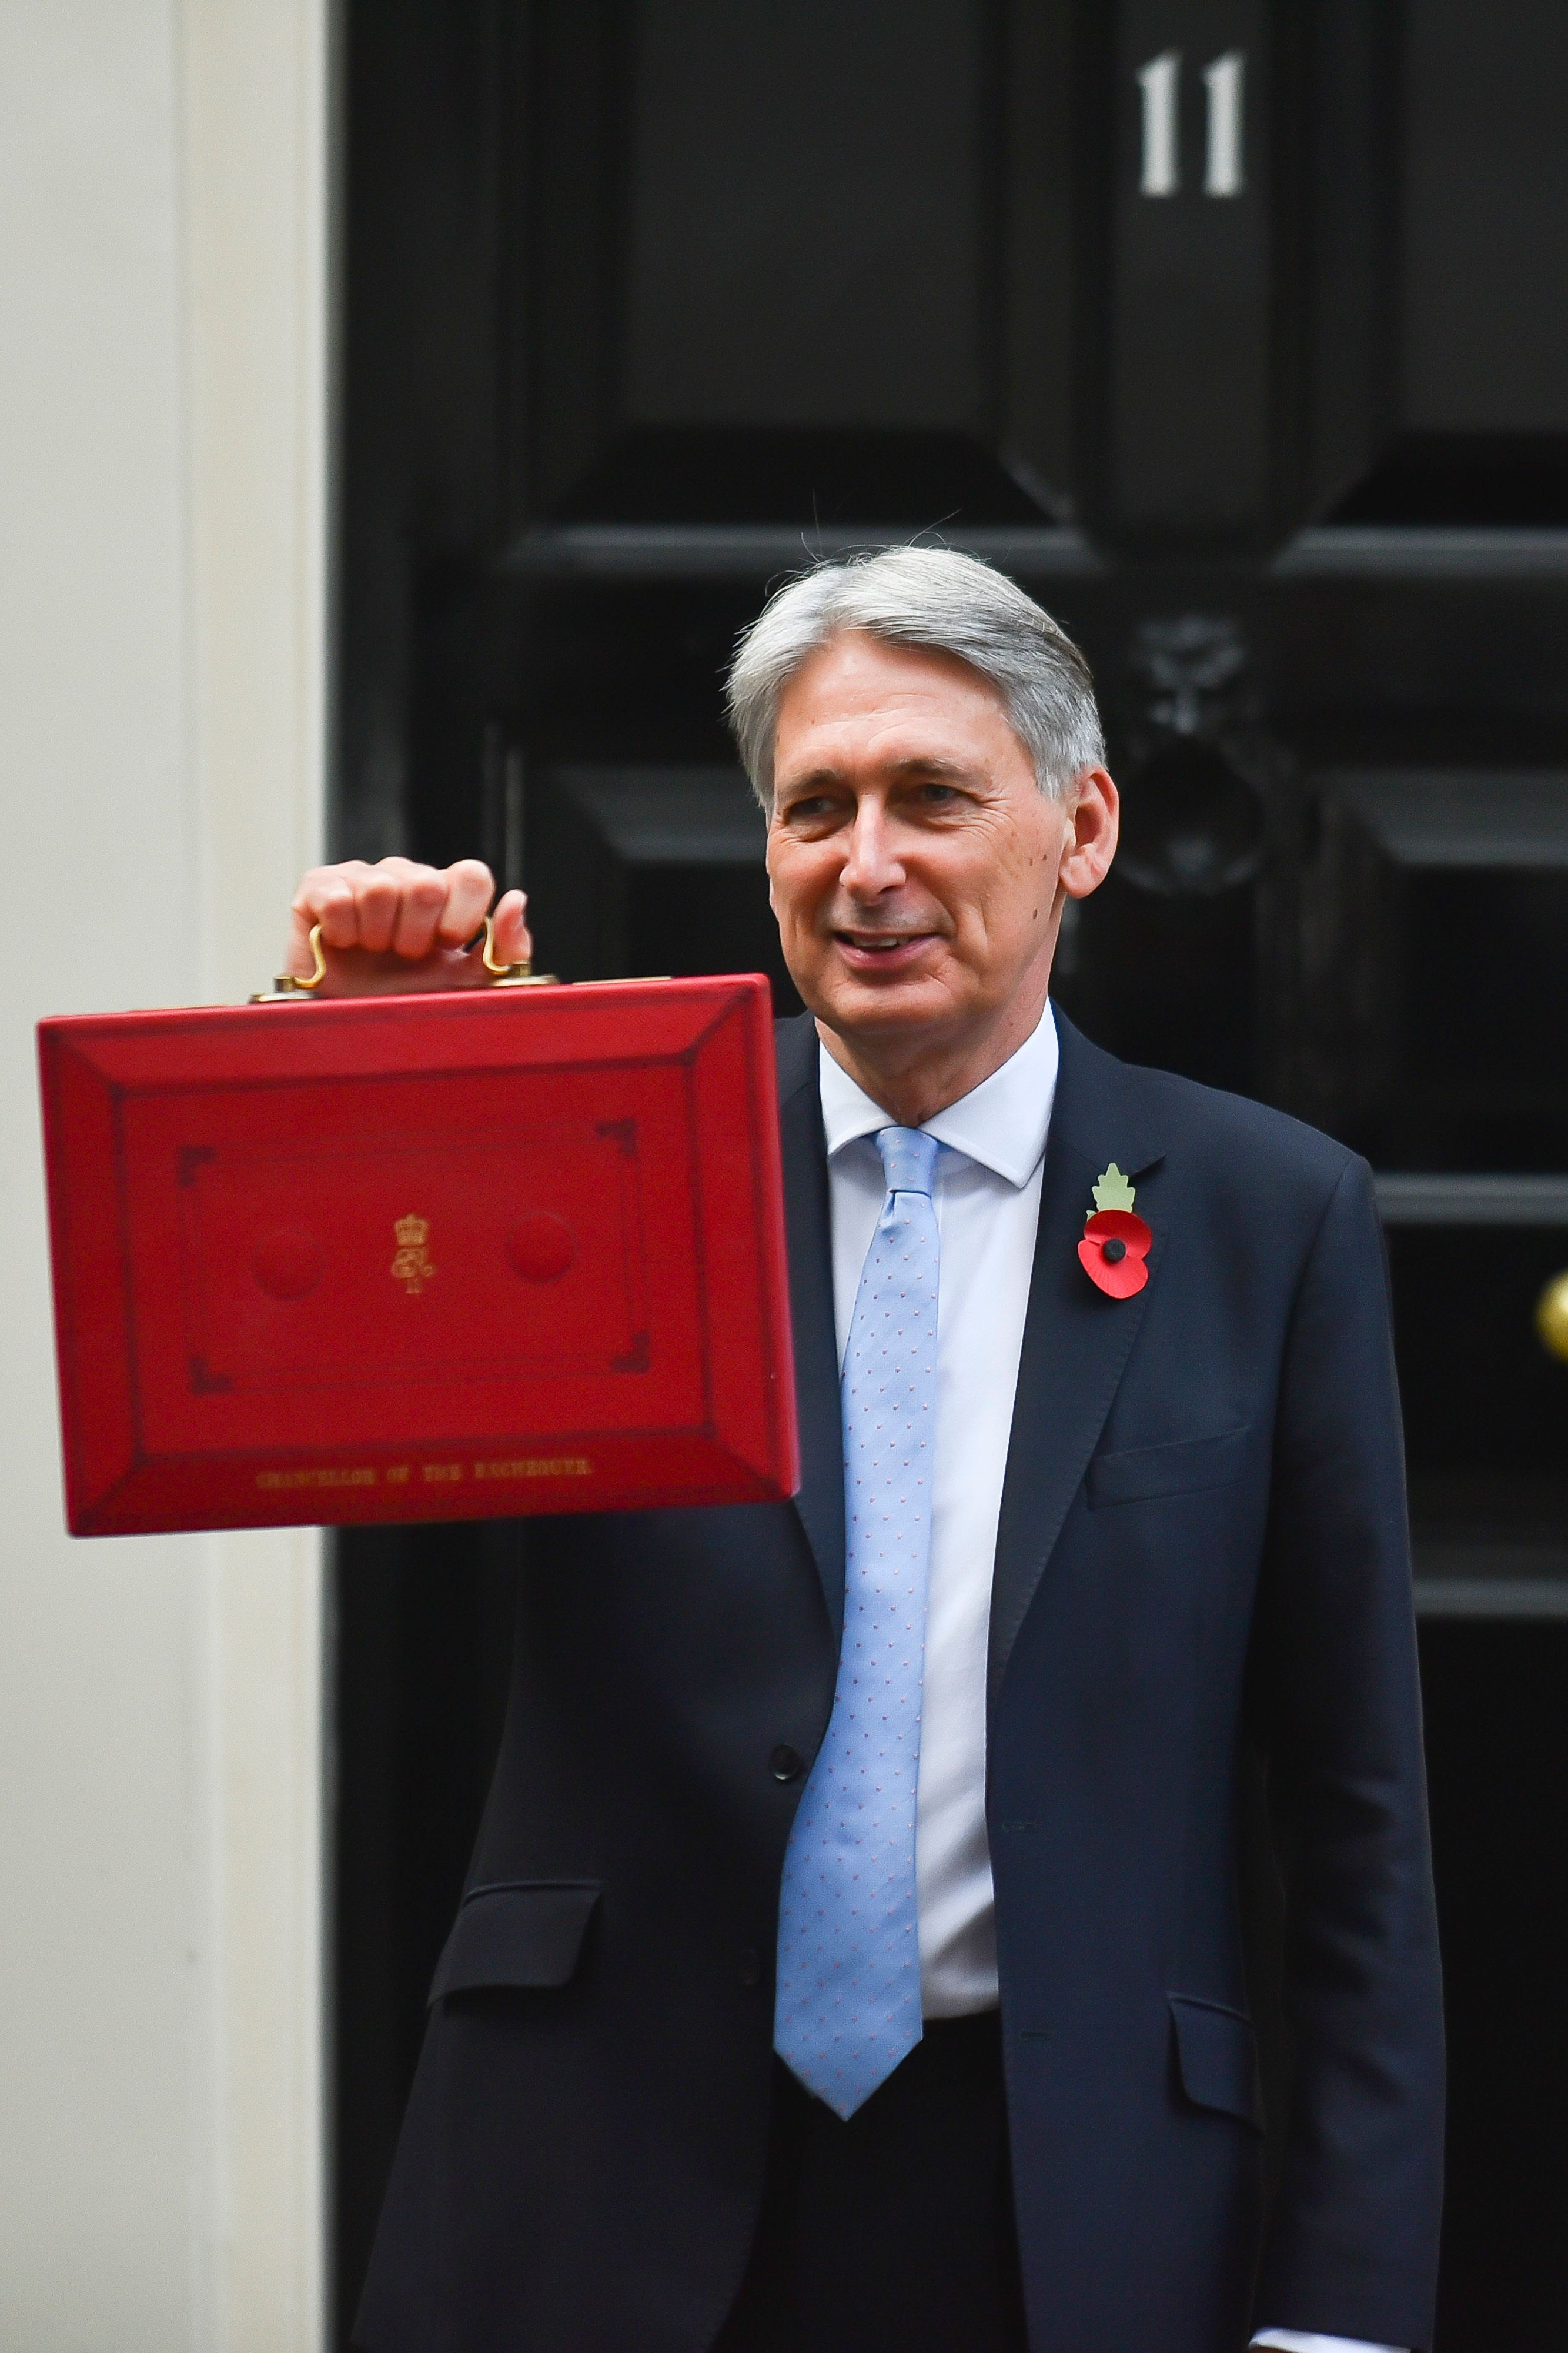 Austerity To Continue Unless Chancellor Spends Billions Of Pounds More, Institute for Fiscal Studies